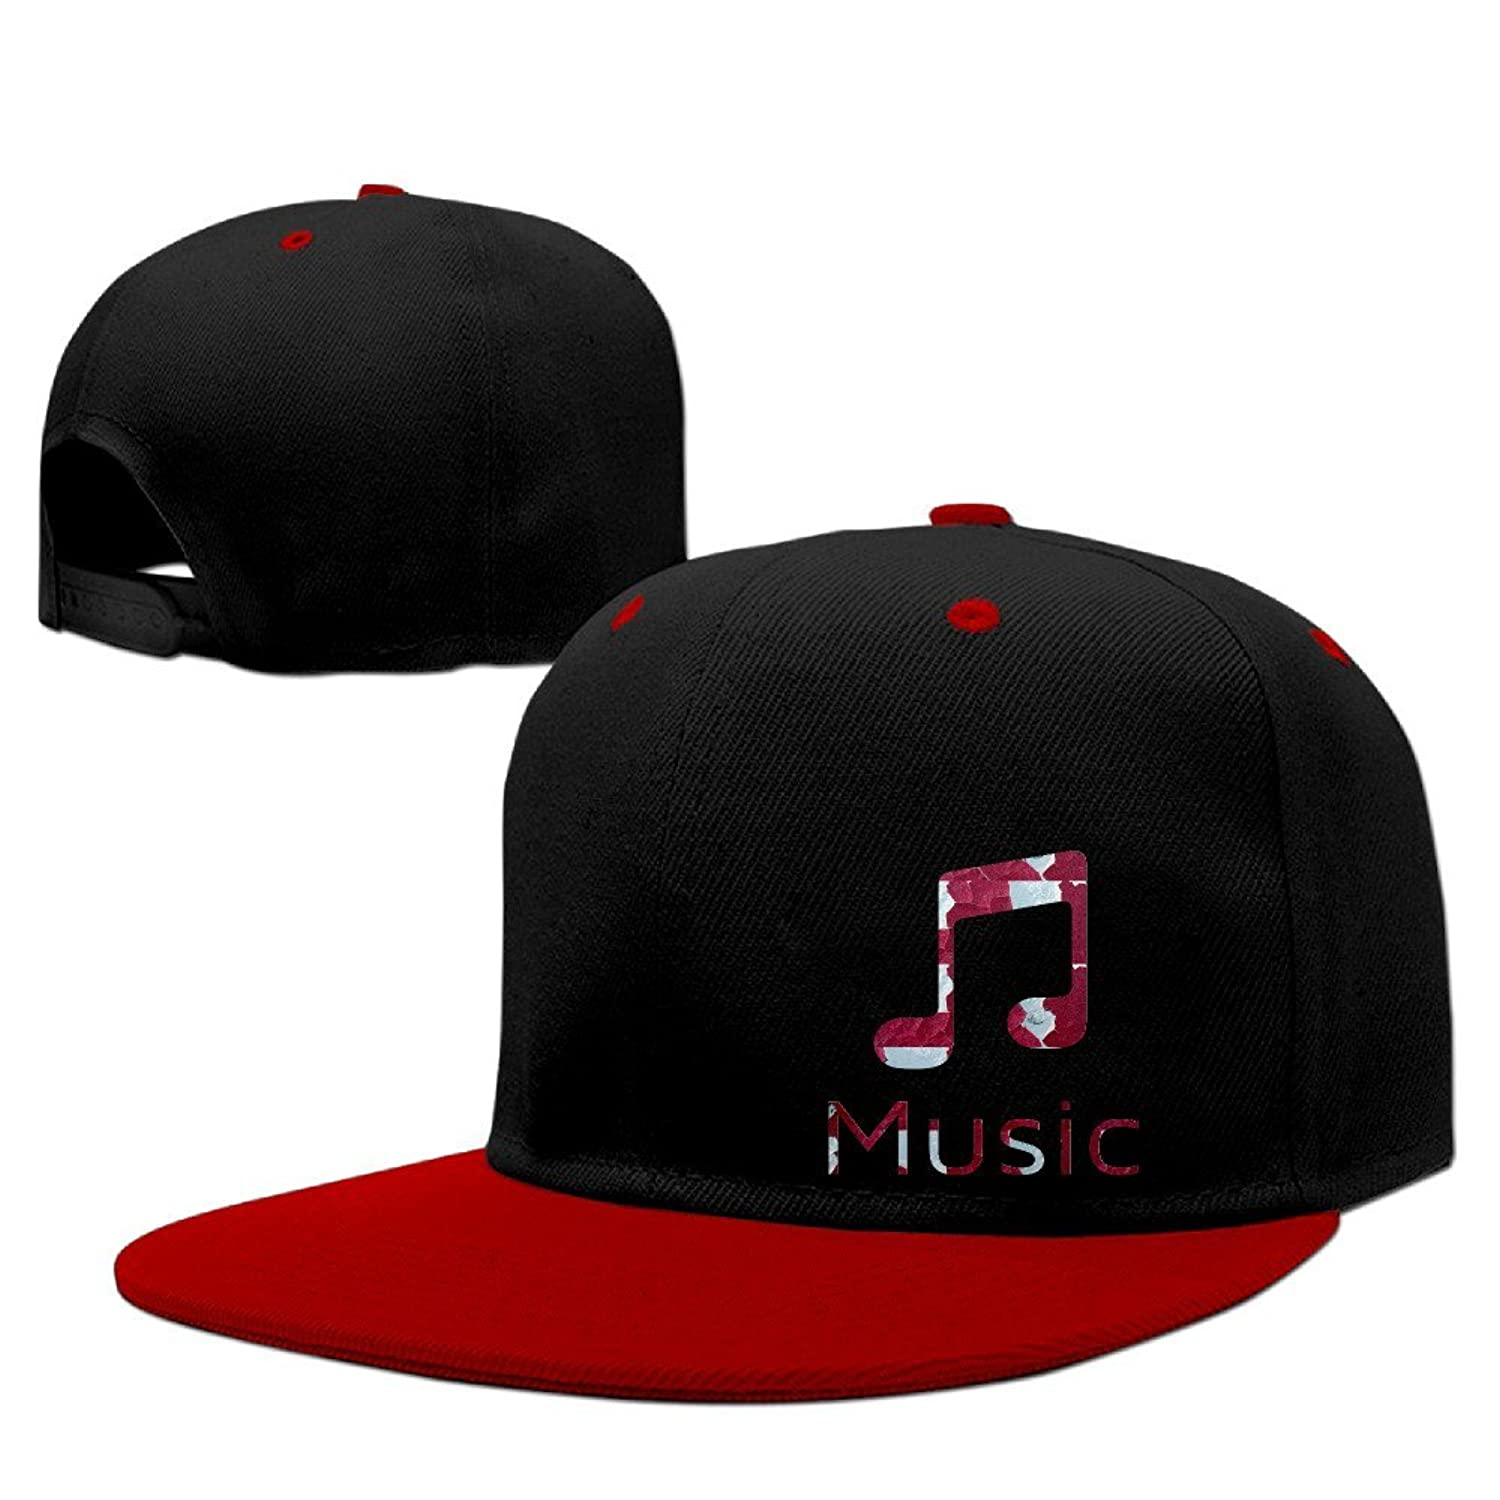 HIITOOP Let's Music Baseball Cap Hip-Hop Style